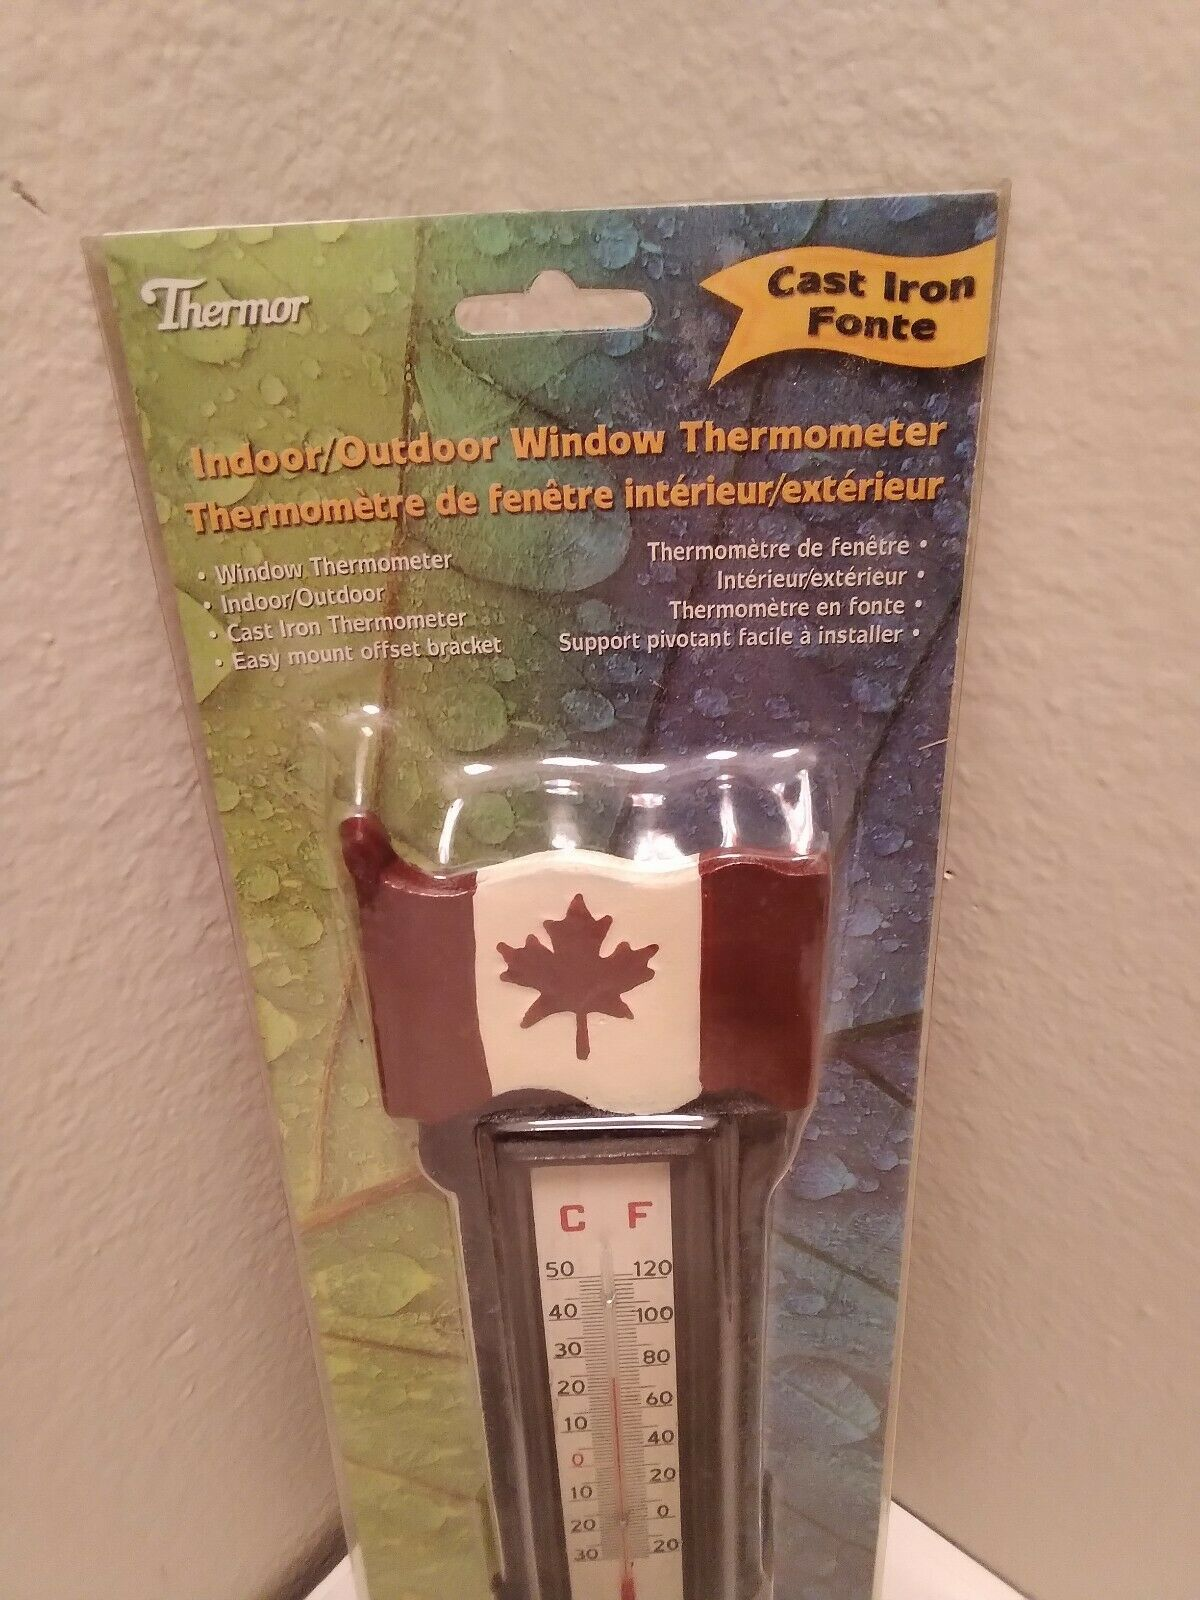 Indoor/Outdoor Window Thermometer - Cast Iron by Thermor